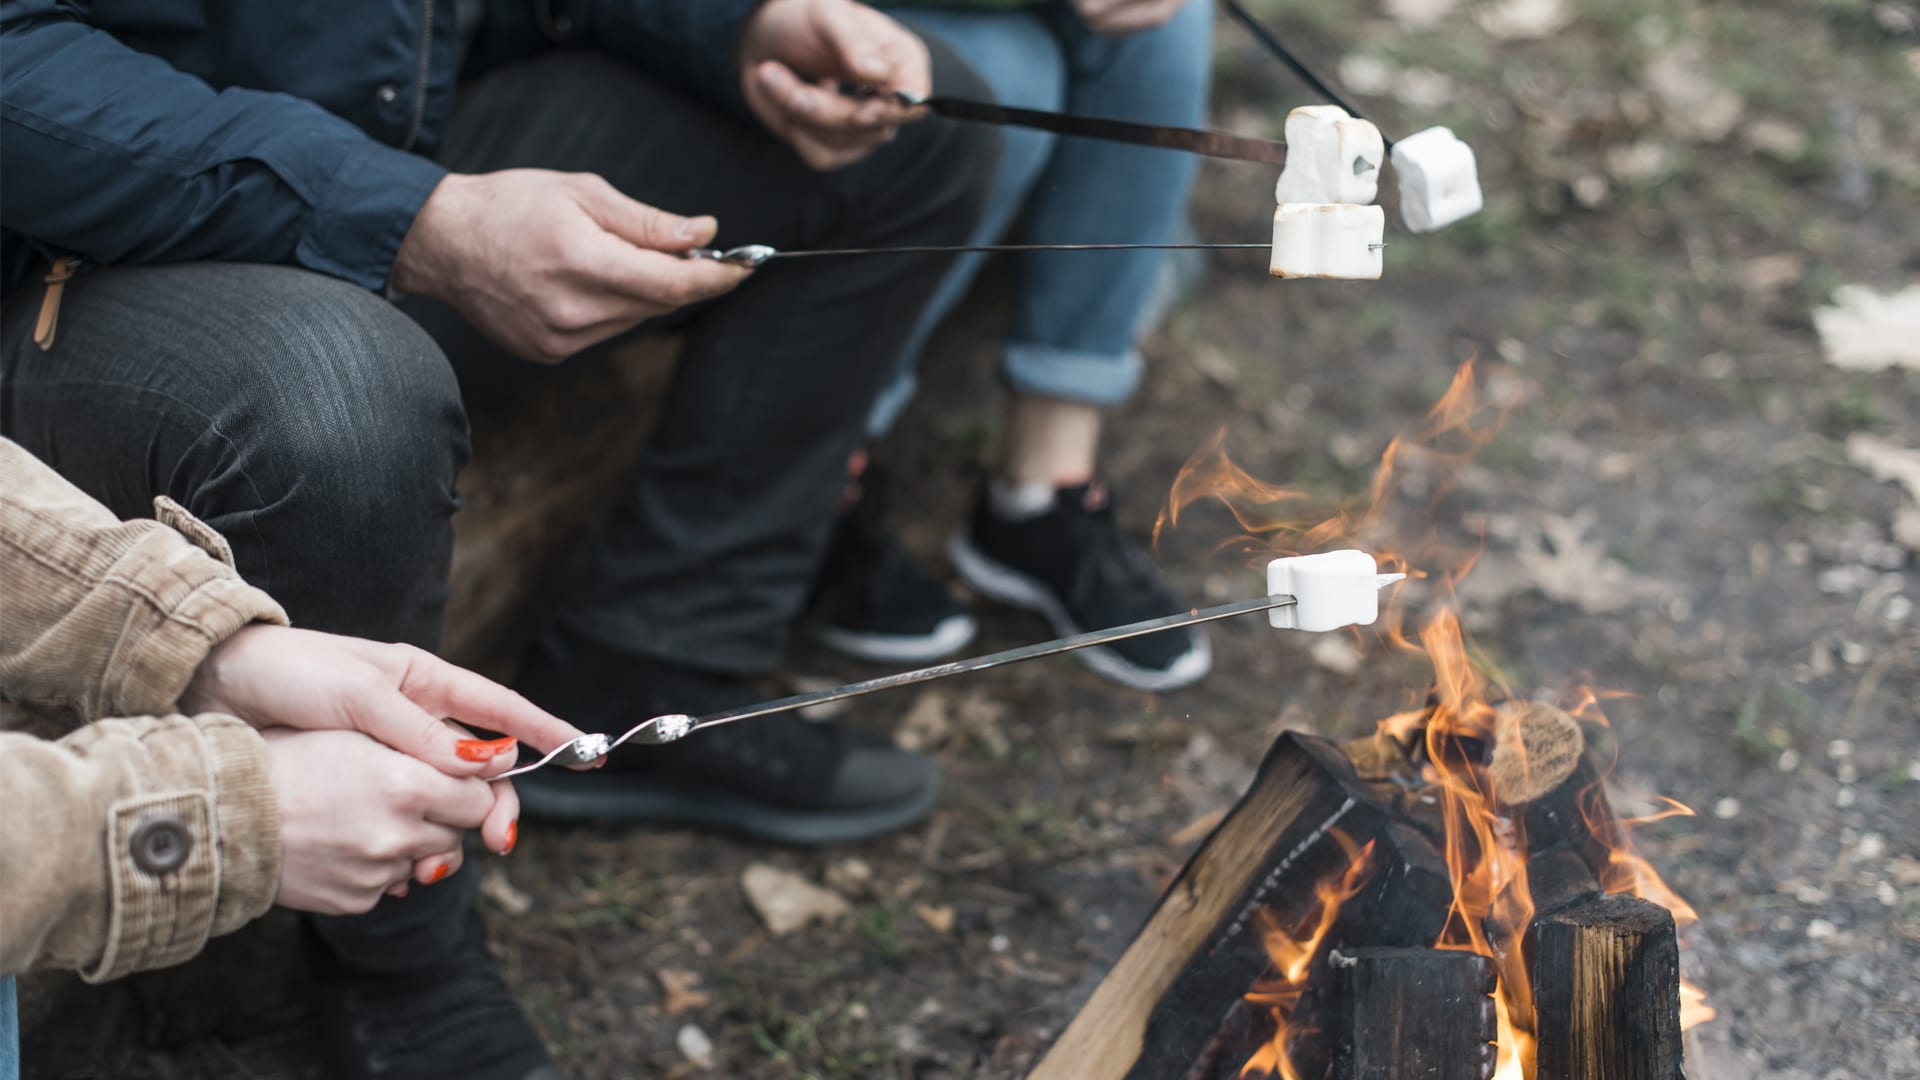 toasting marshmallows over the fire